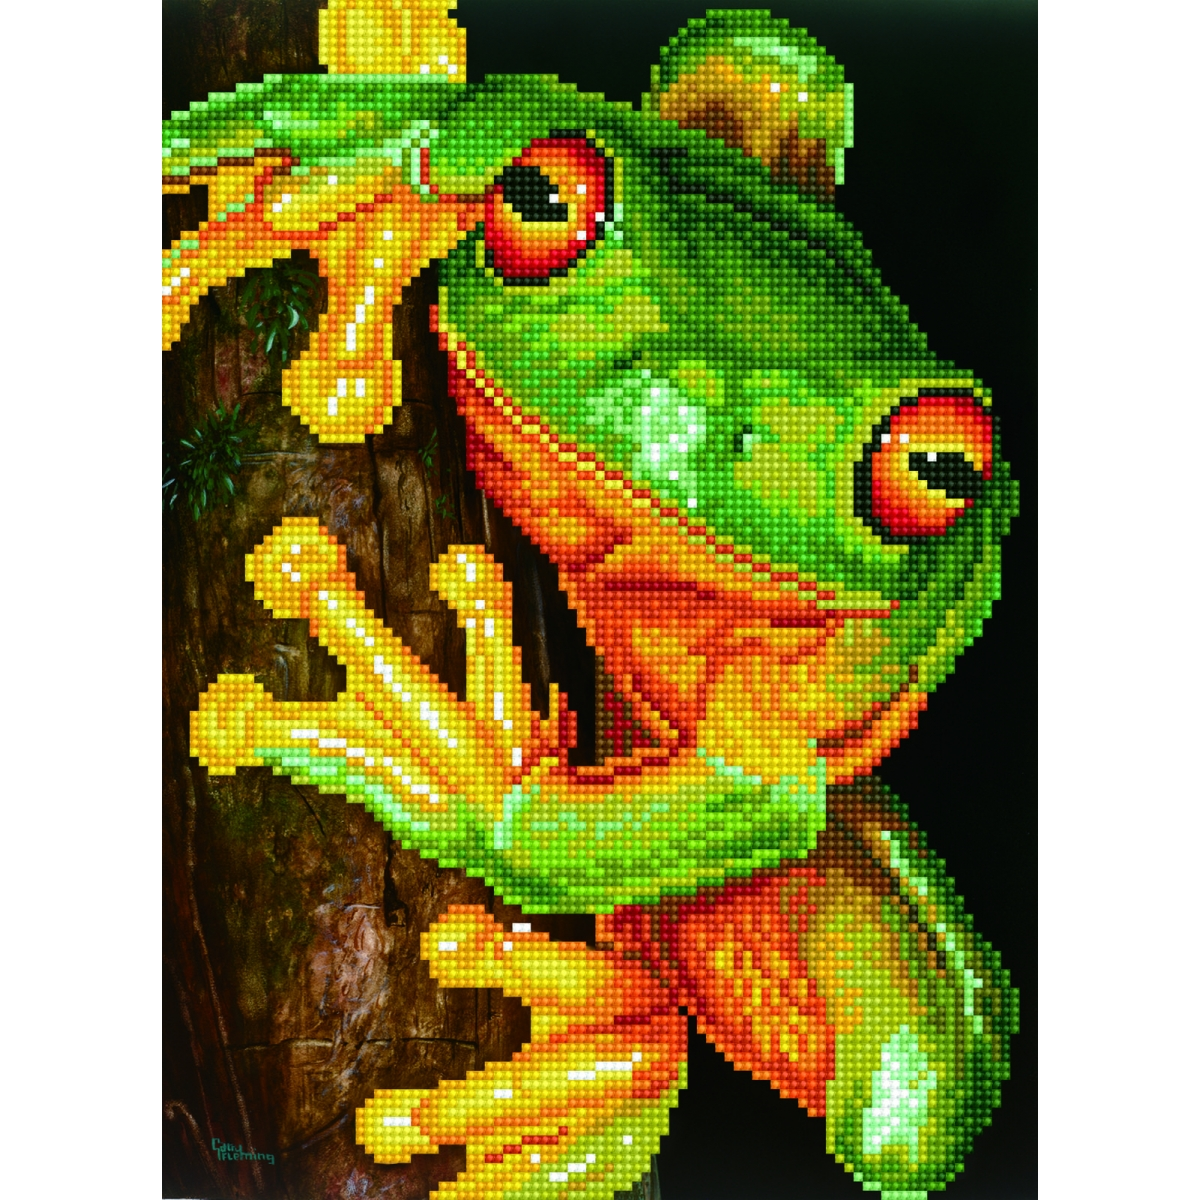 DD7_031___Green_Tree_Frog_1200x1200__1542868500_18